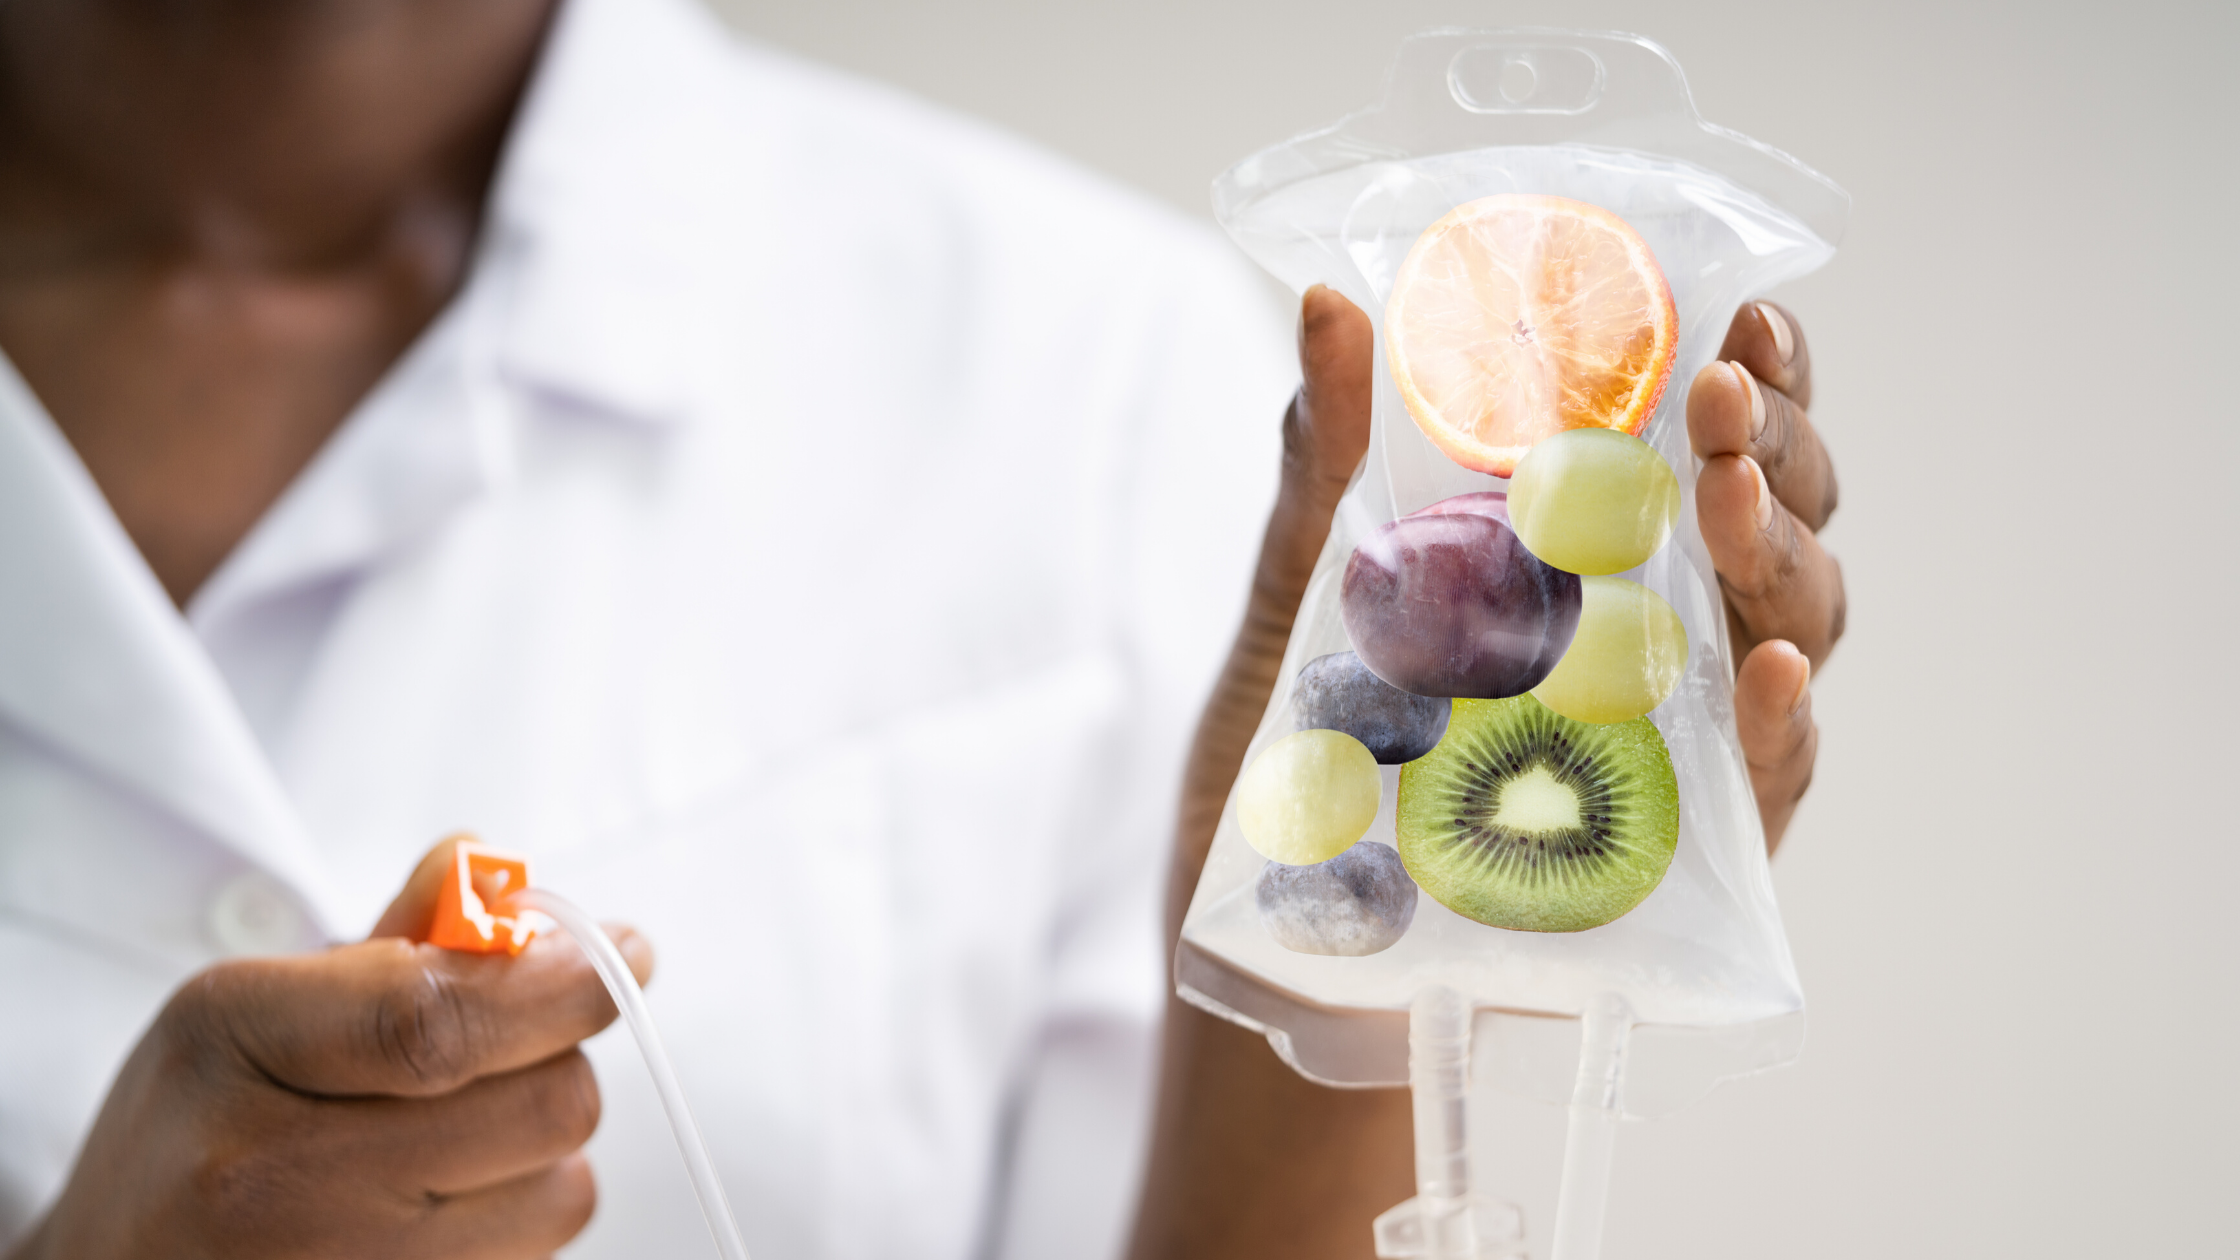 IV Infusion Therapy in Kansas City | Serving the area with functional medicine solutions, including innovative nutritional IV infusion therapy.